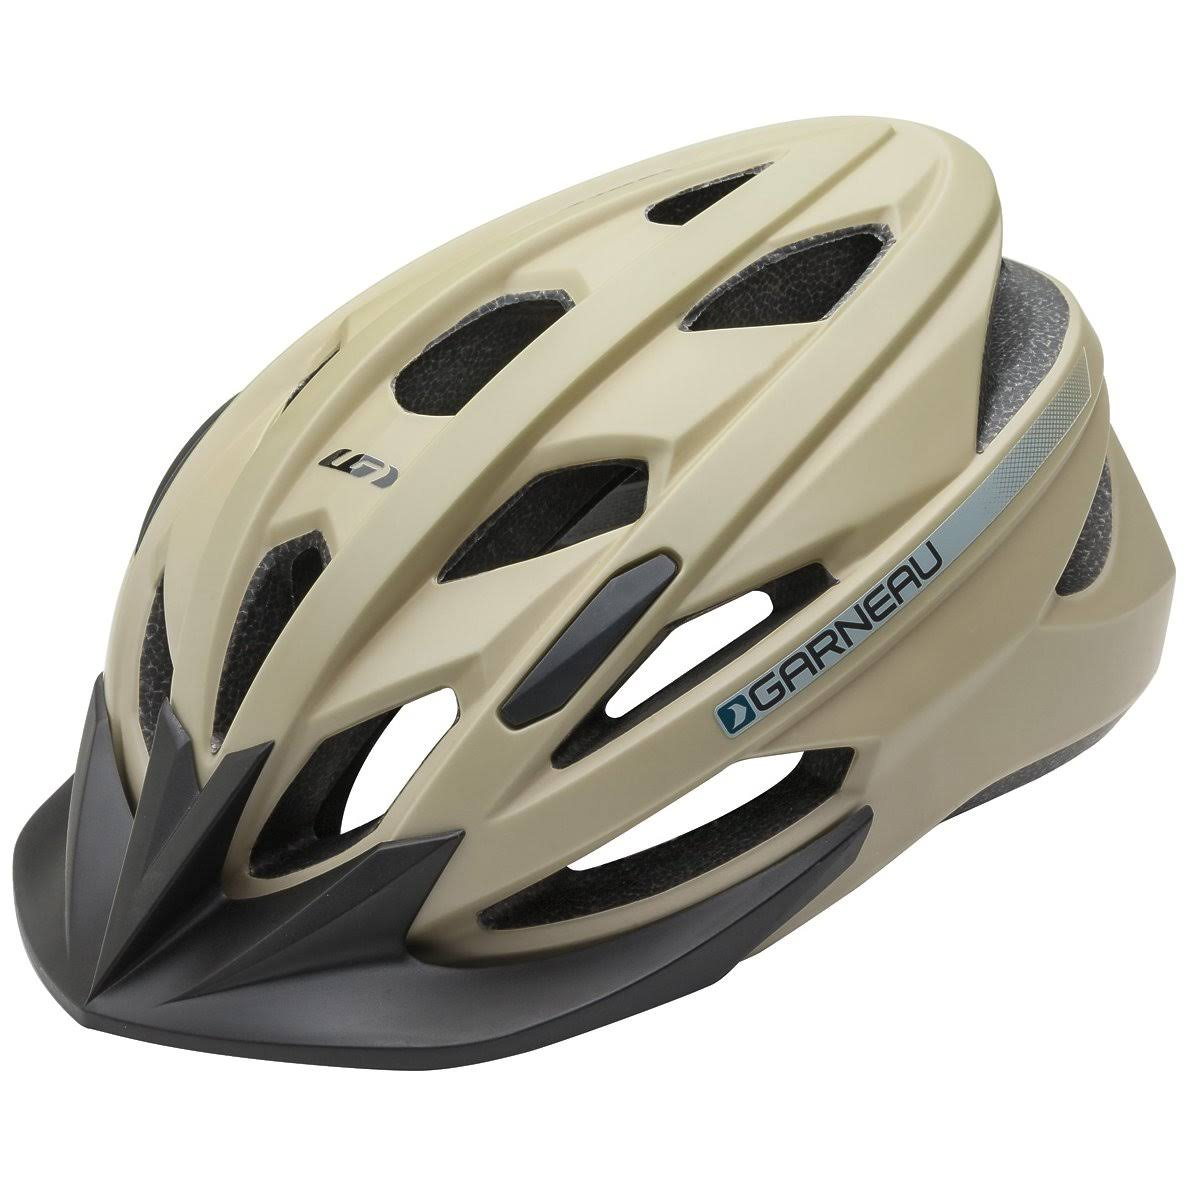 Louis Garneau 2017/18 Eagle Road/MTB Cycling Helmet - 1405465 (Brown - Universal Adult)